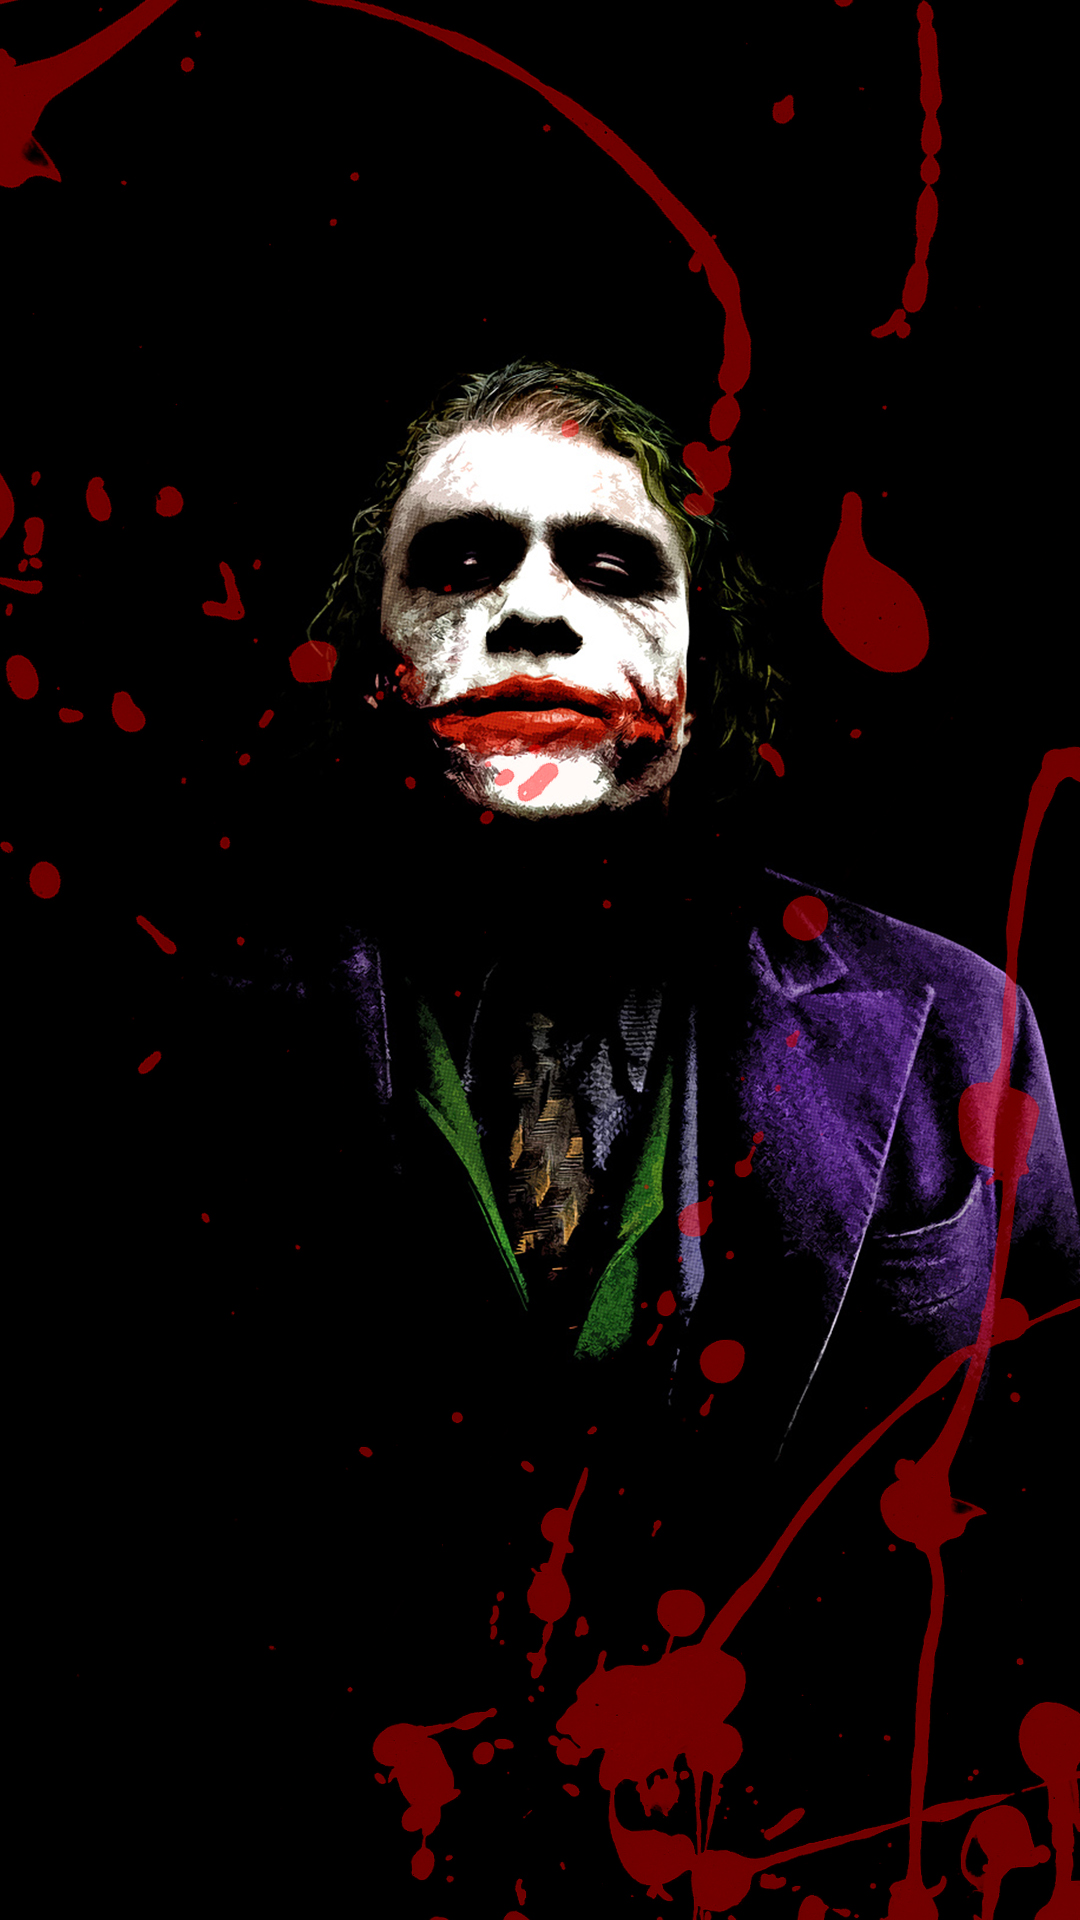 Joker Splash Phone Wallpaper